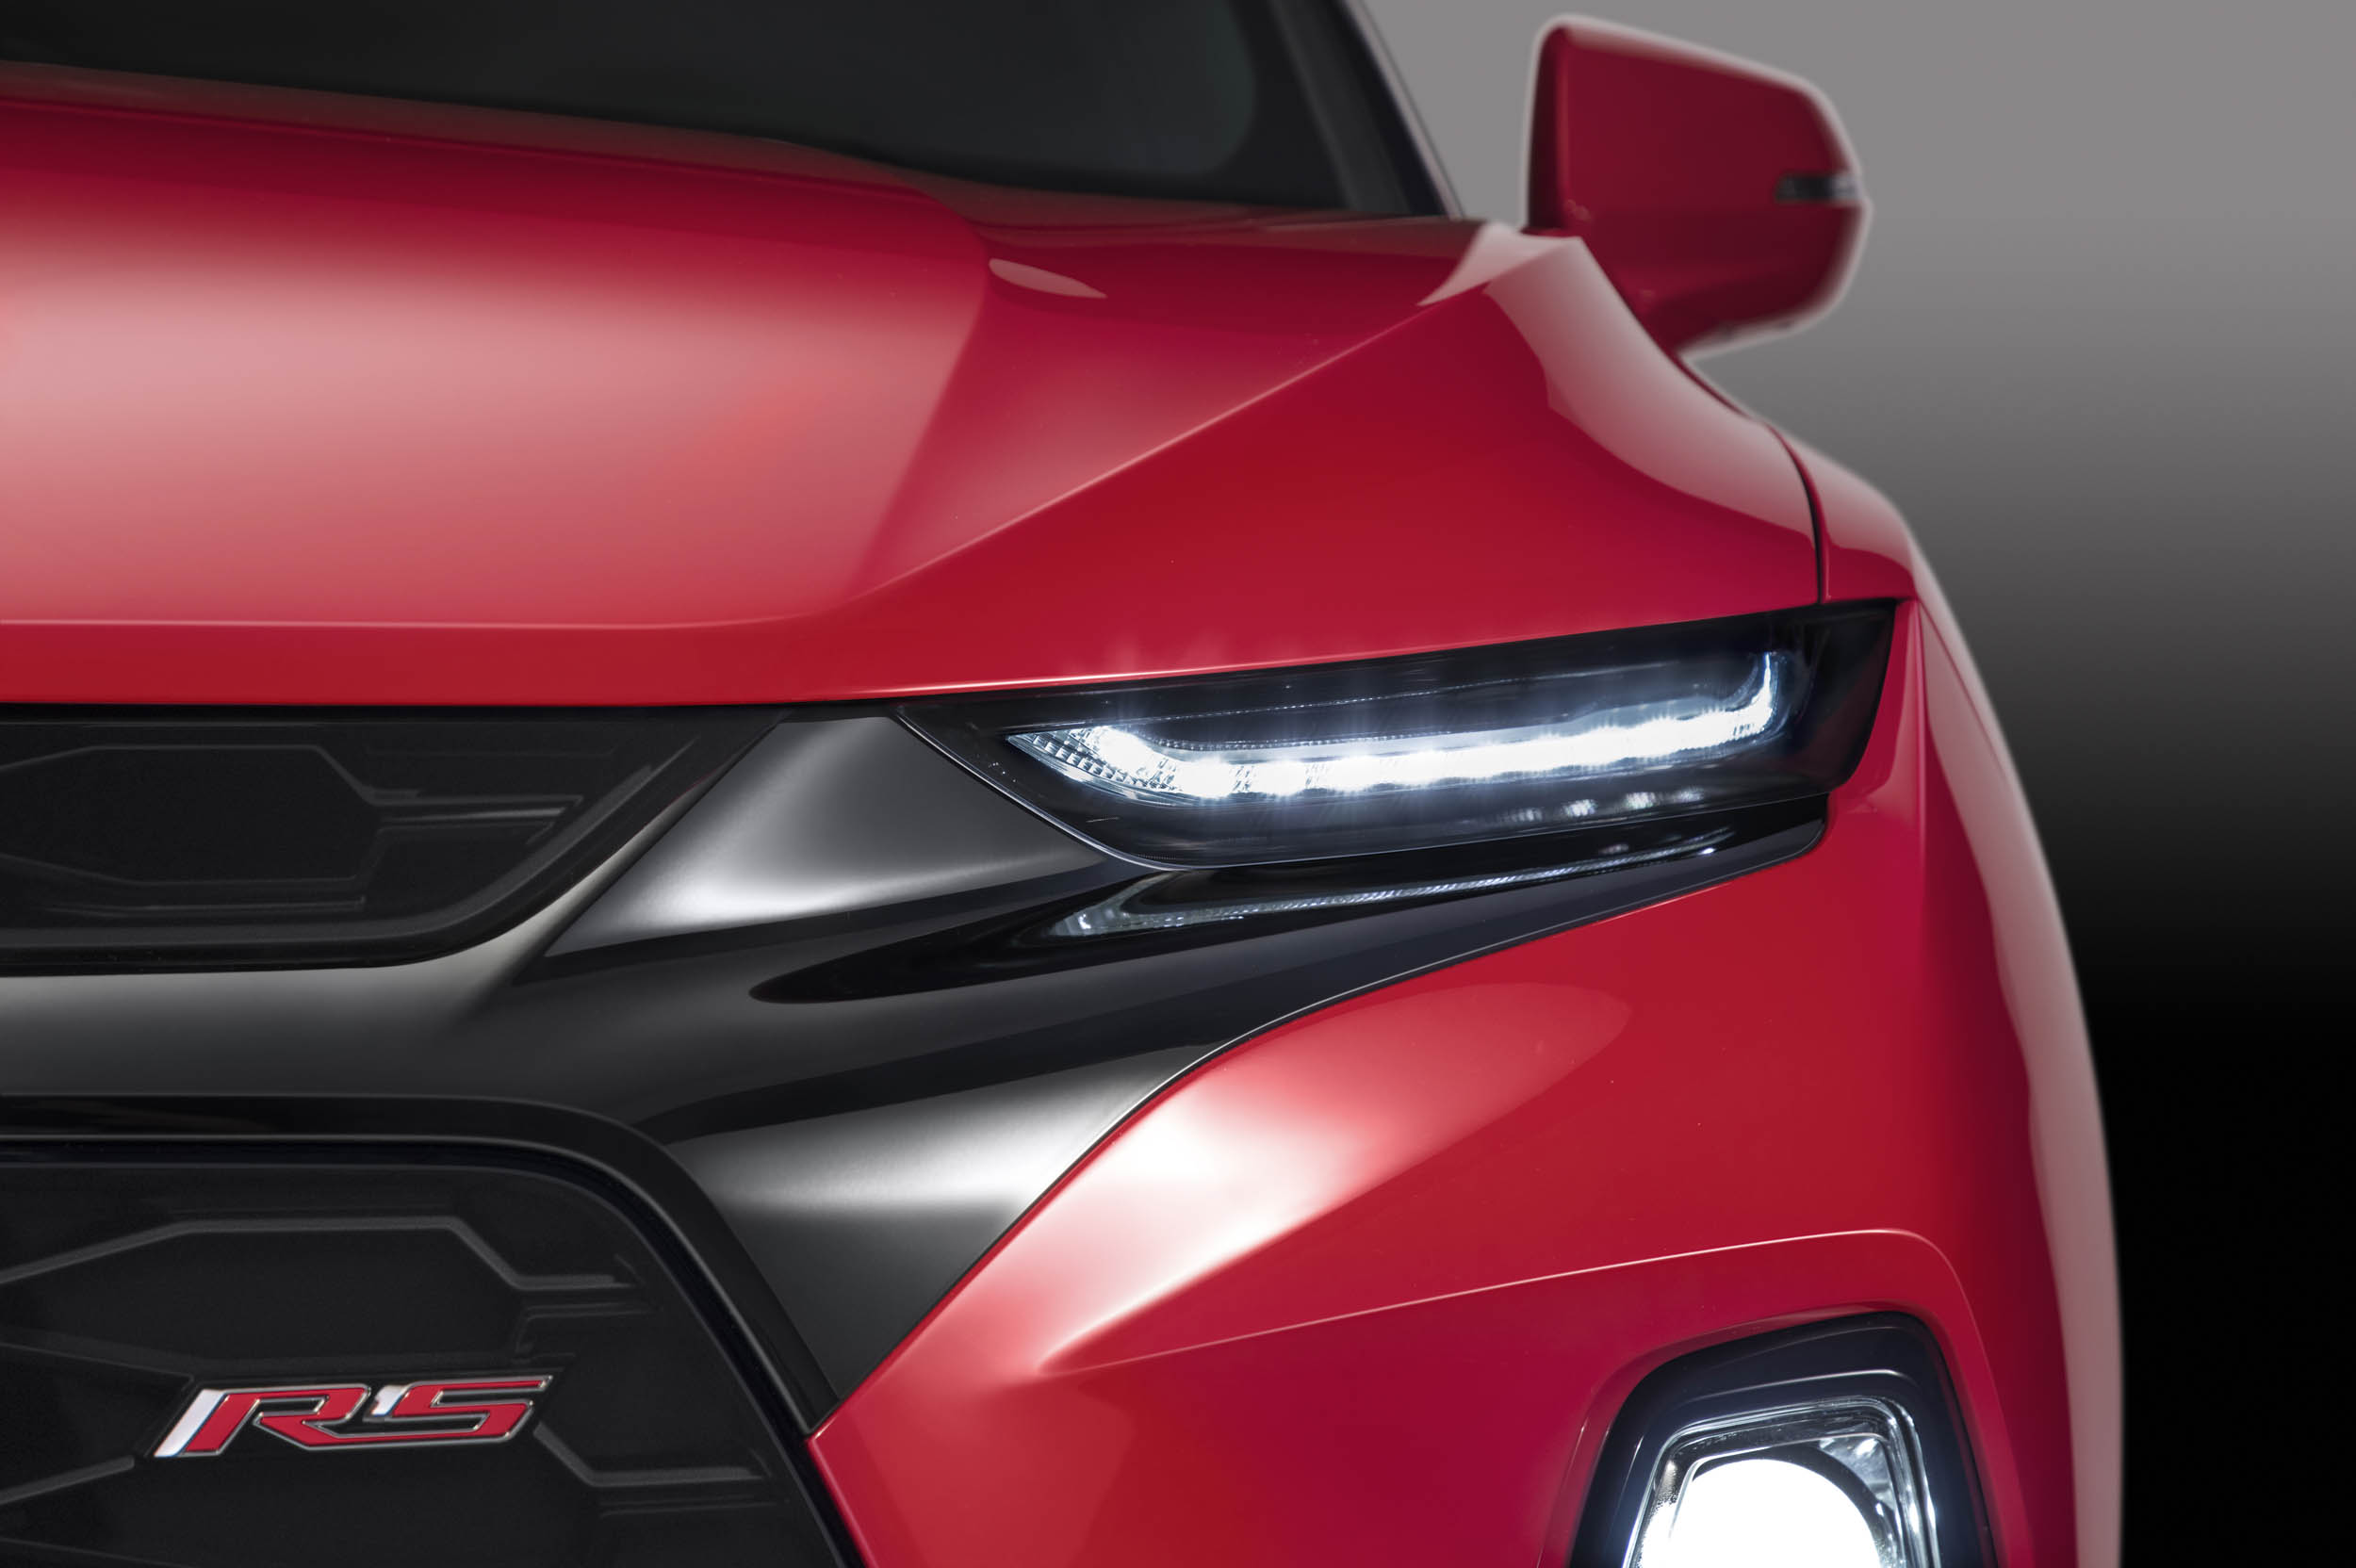 2019 Chevrolet Blazer front headlight detail